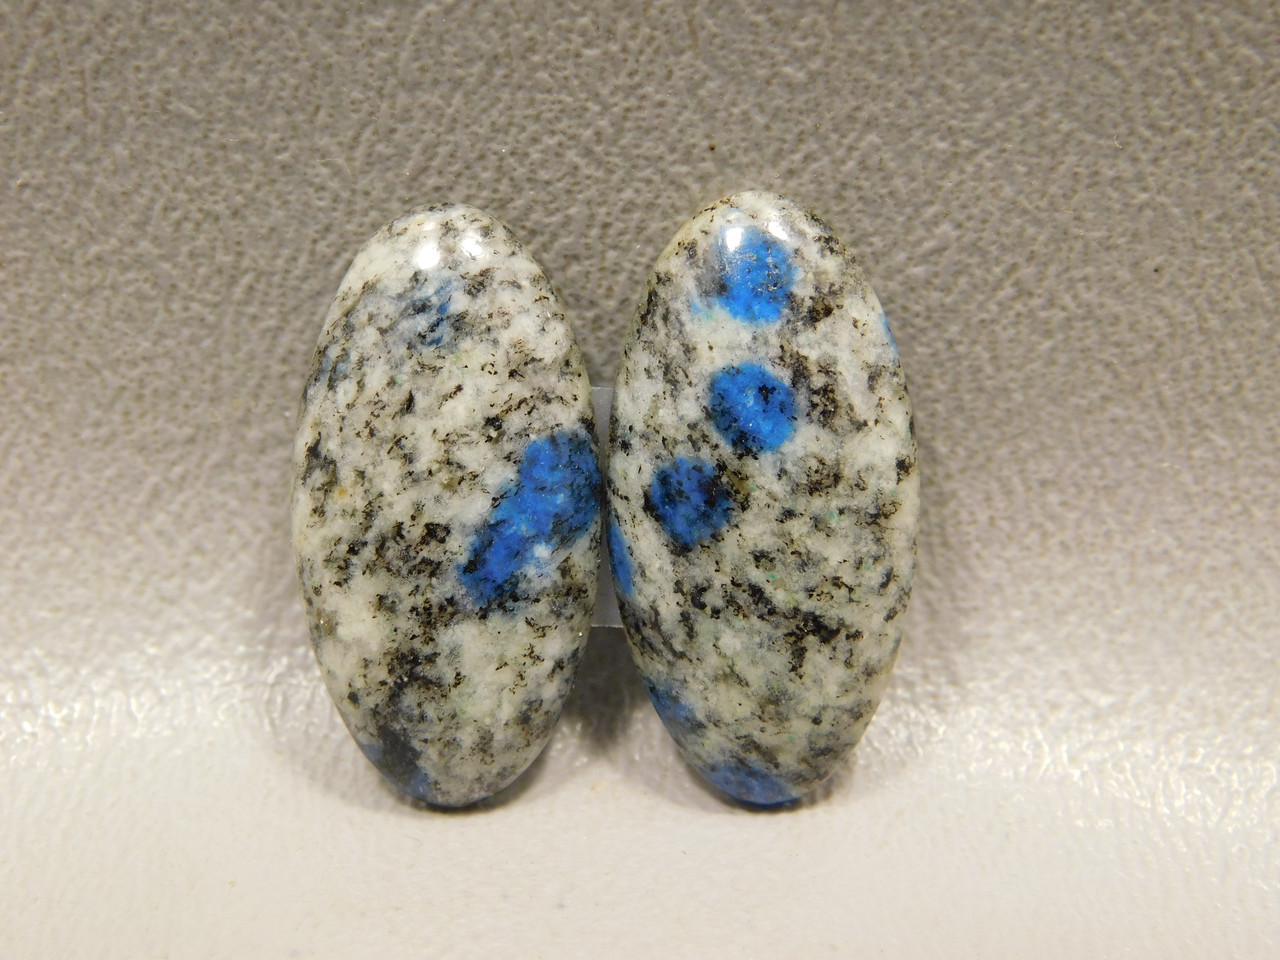 Cabochons K2 Blue Spotted Azurite Jasper Stone Oval Matched Pairs #18